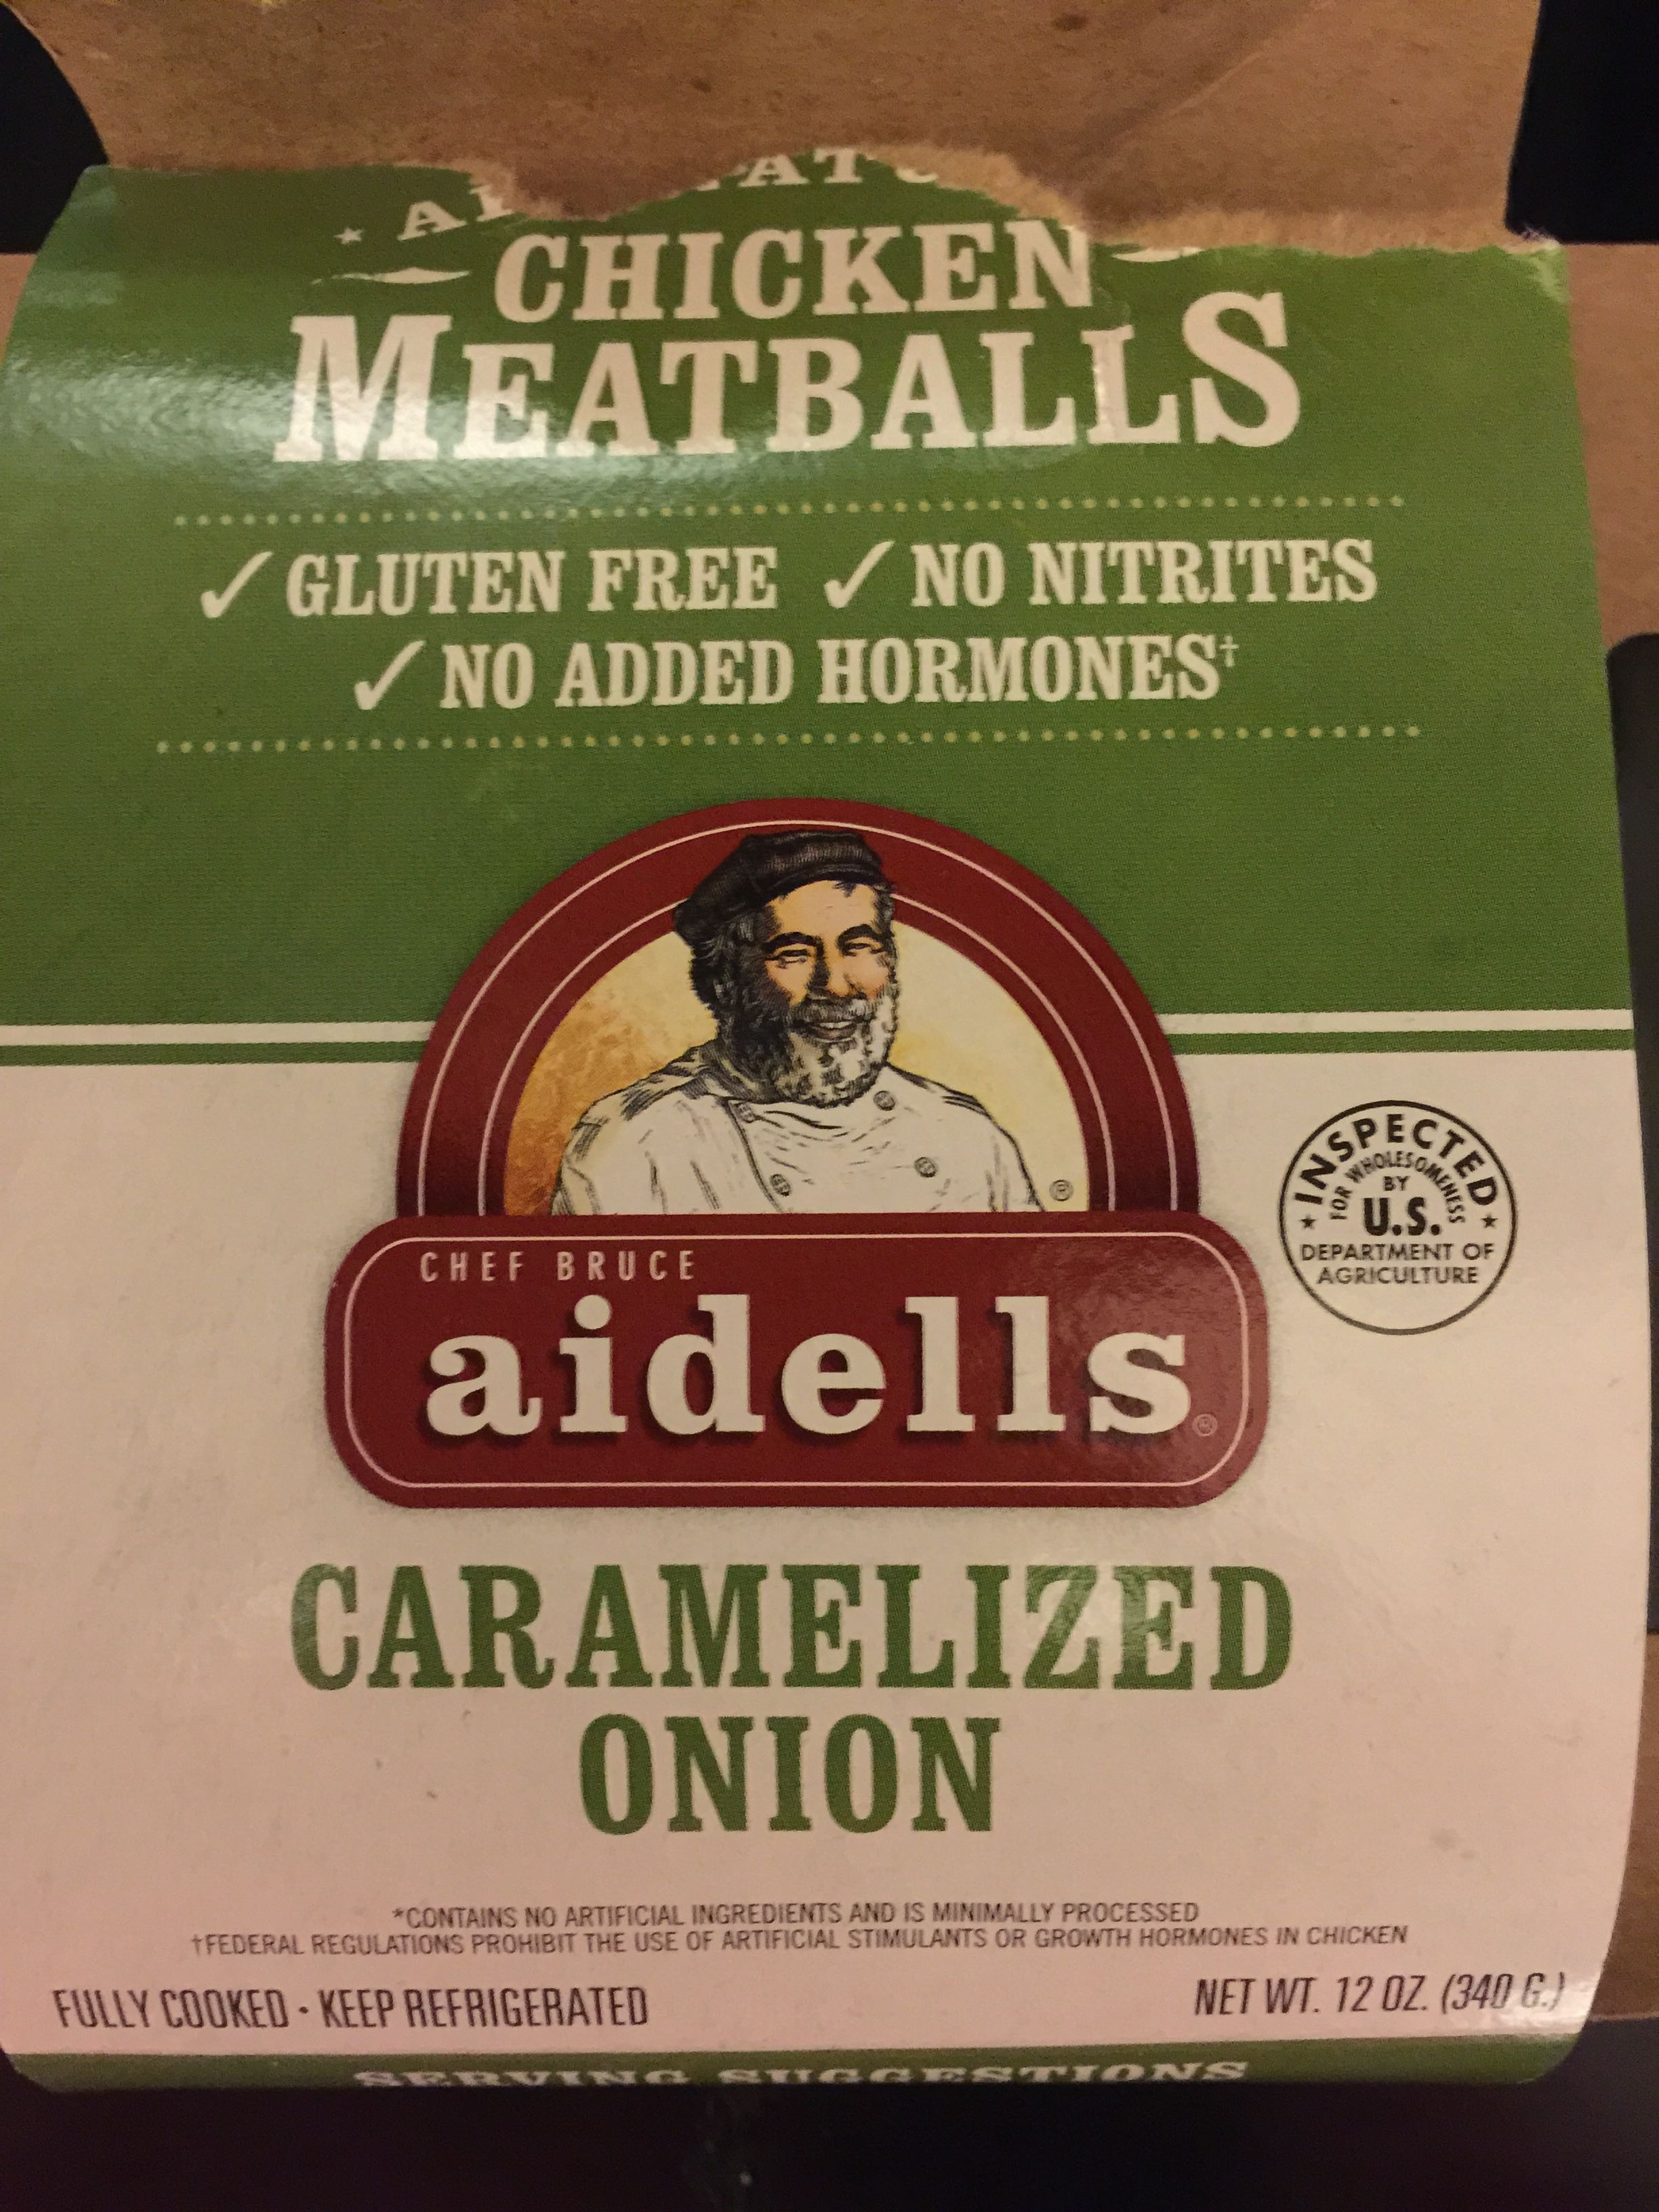 Caramelized Onion Chicken Meatballs - Product